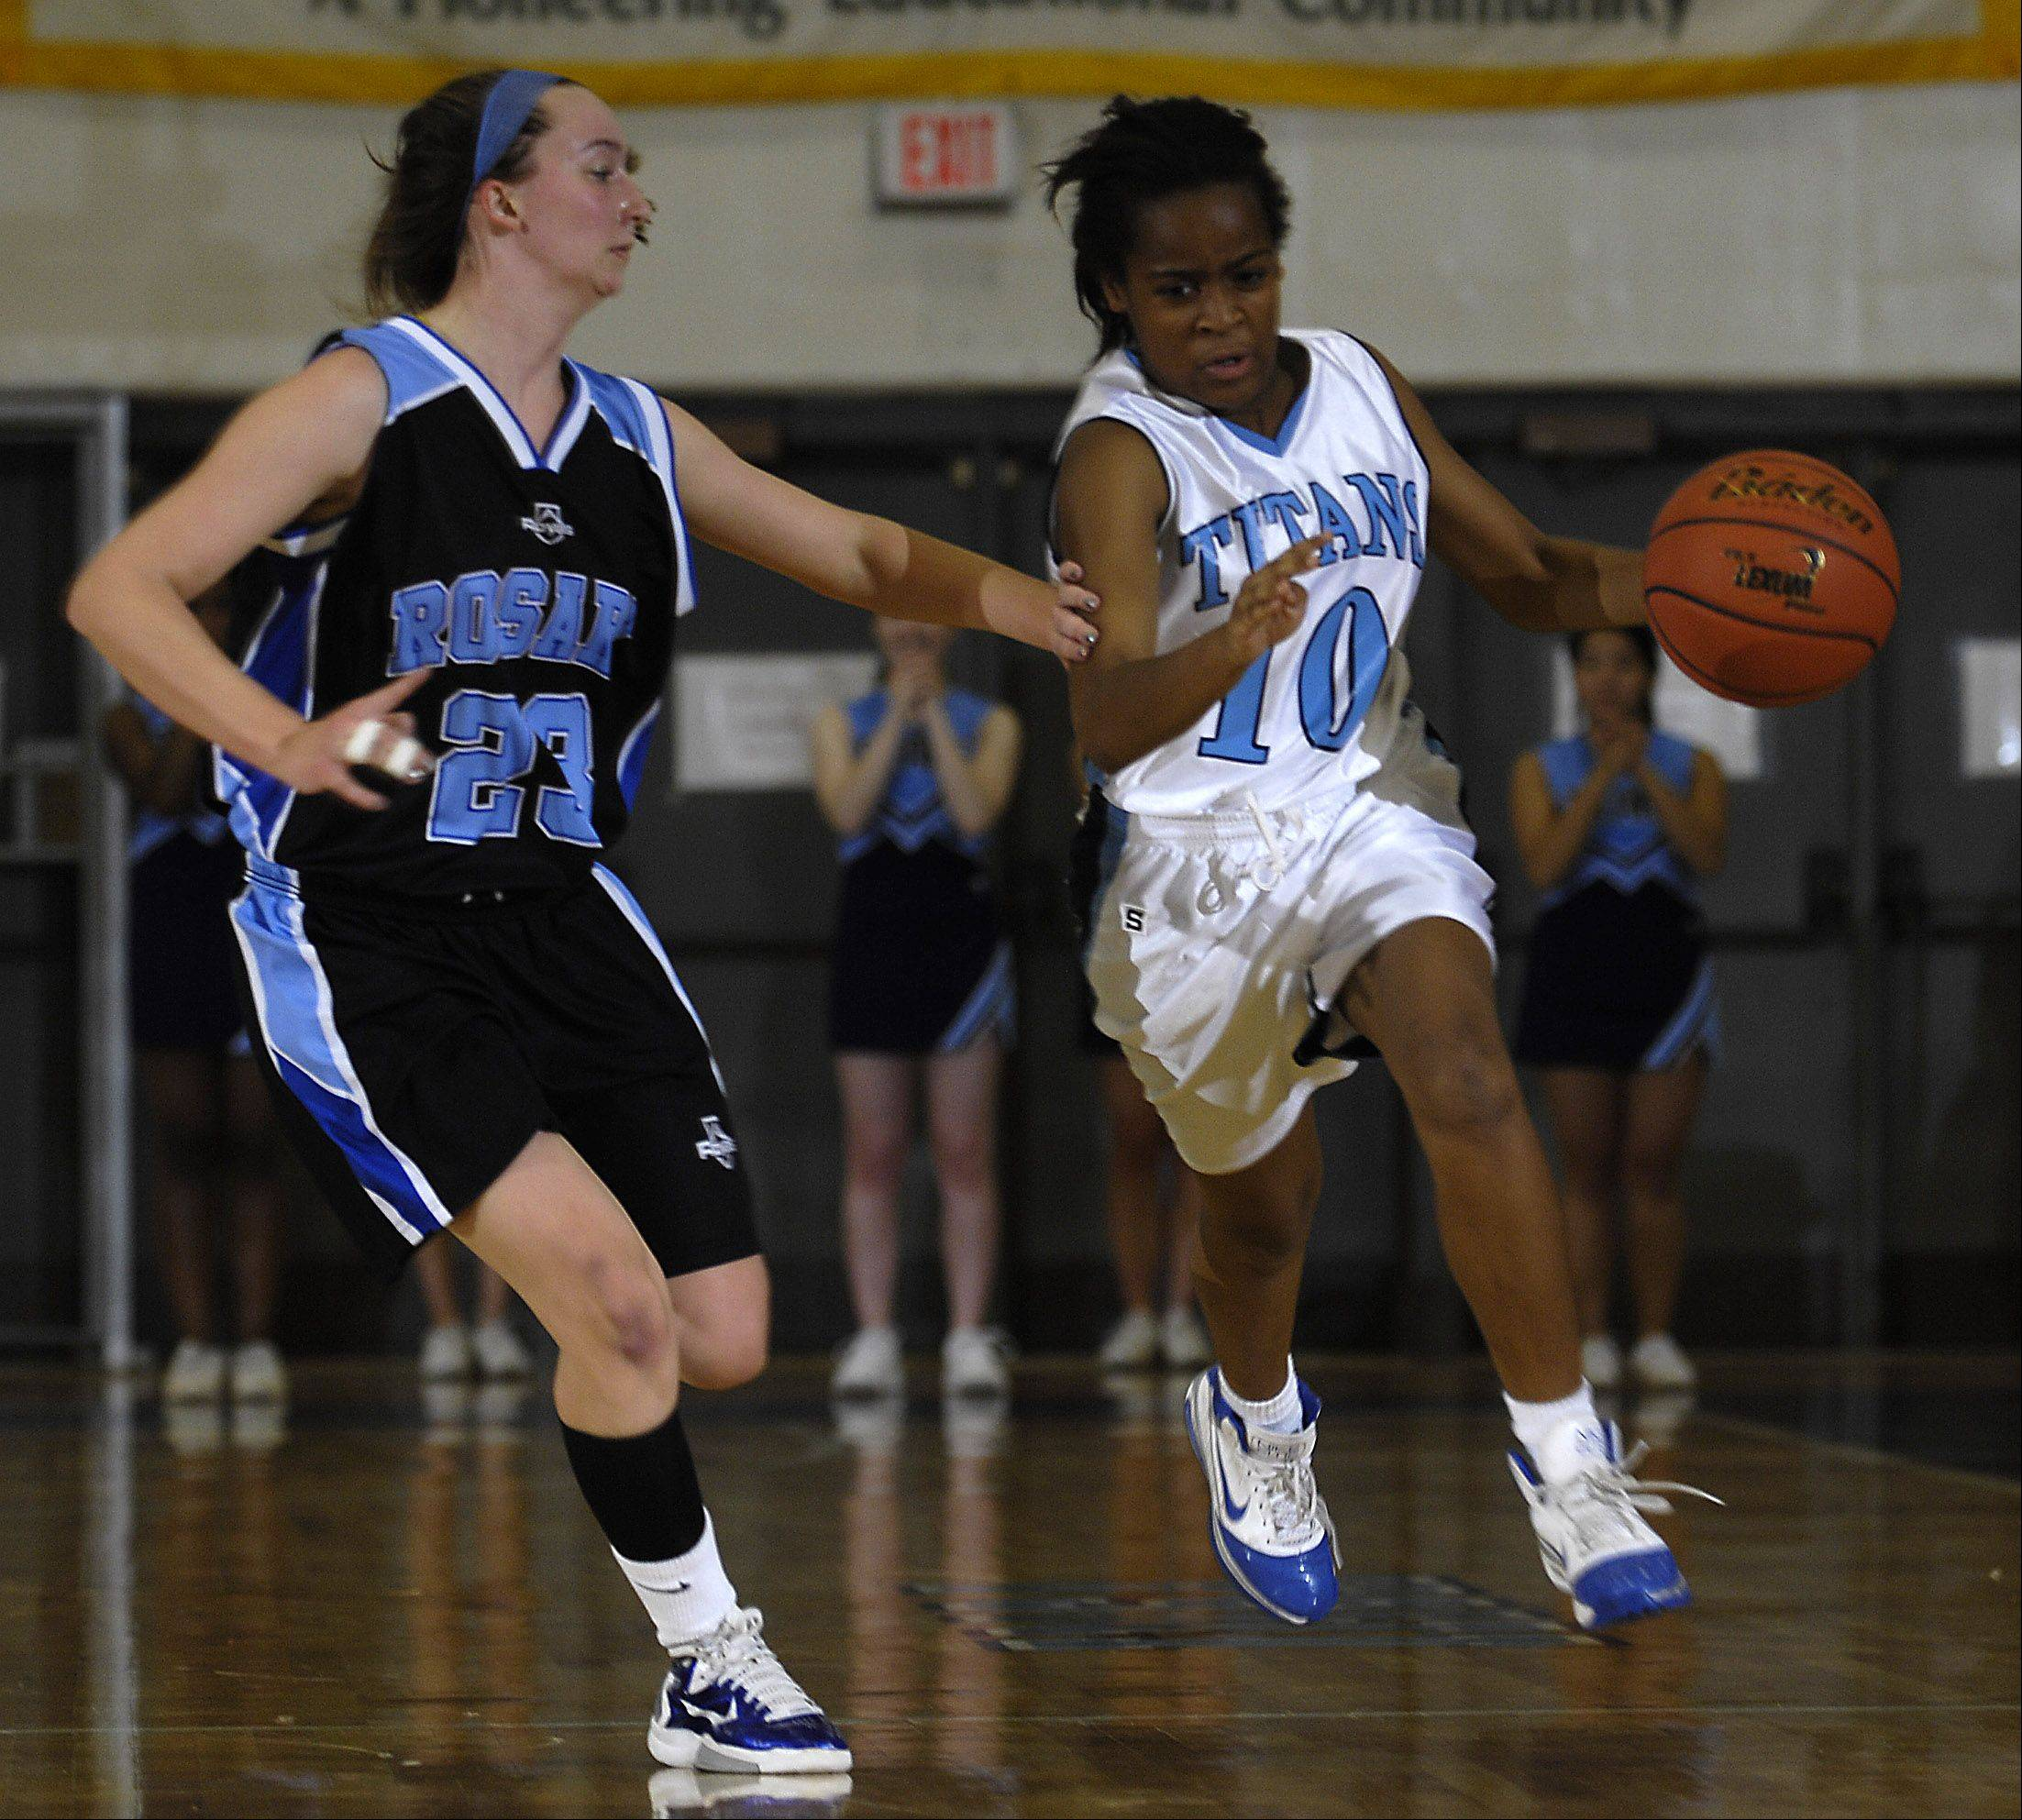 Rosary's Mary Wentworth guards IMSA's Kendall Byrd Monday during their game at IMSA.